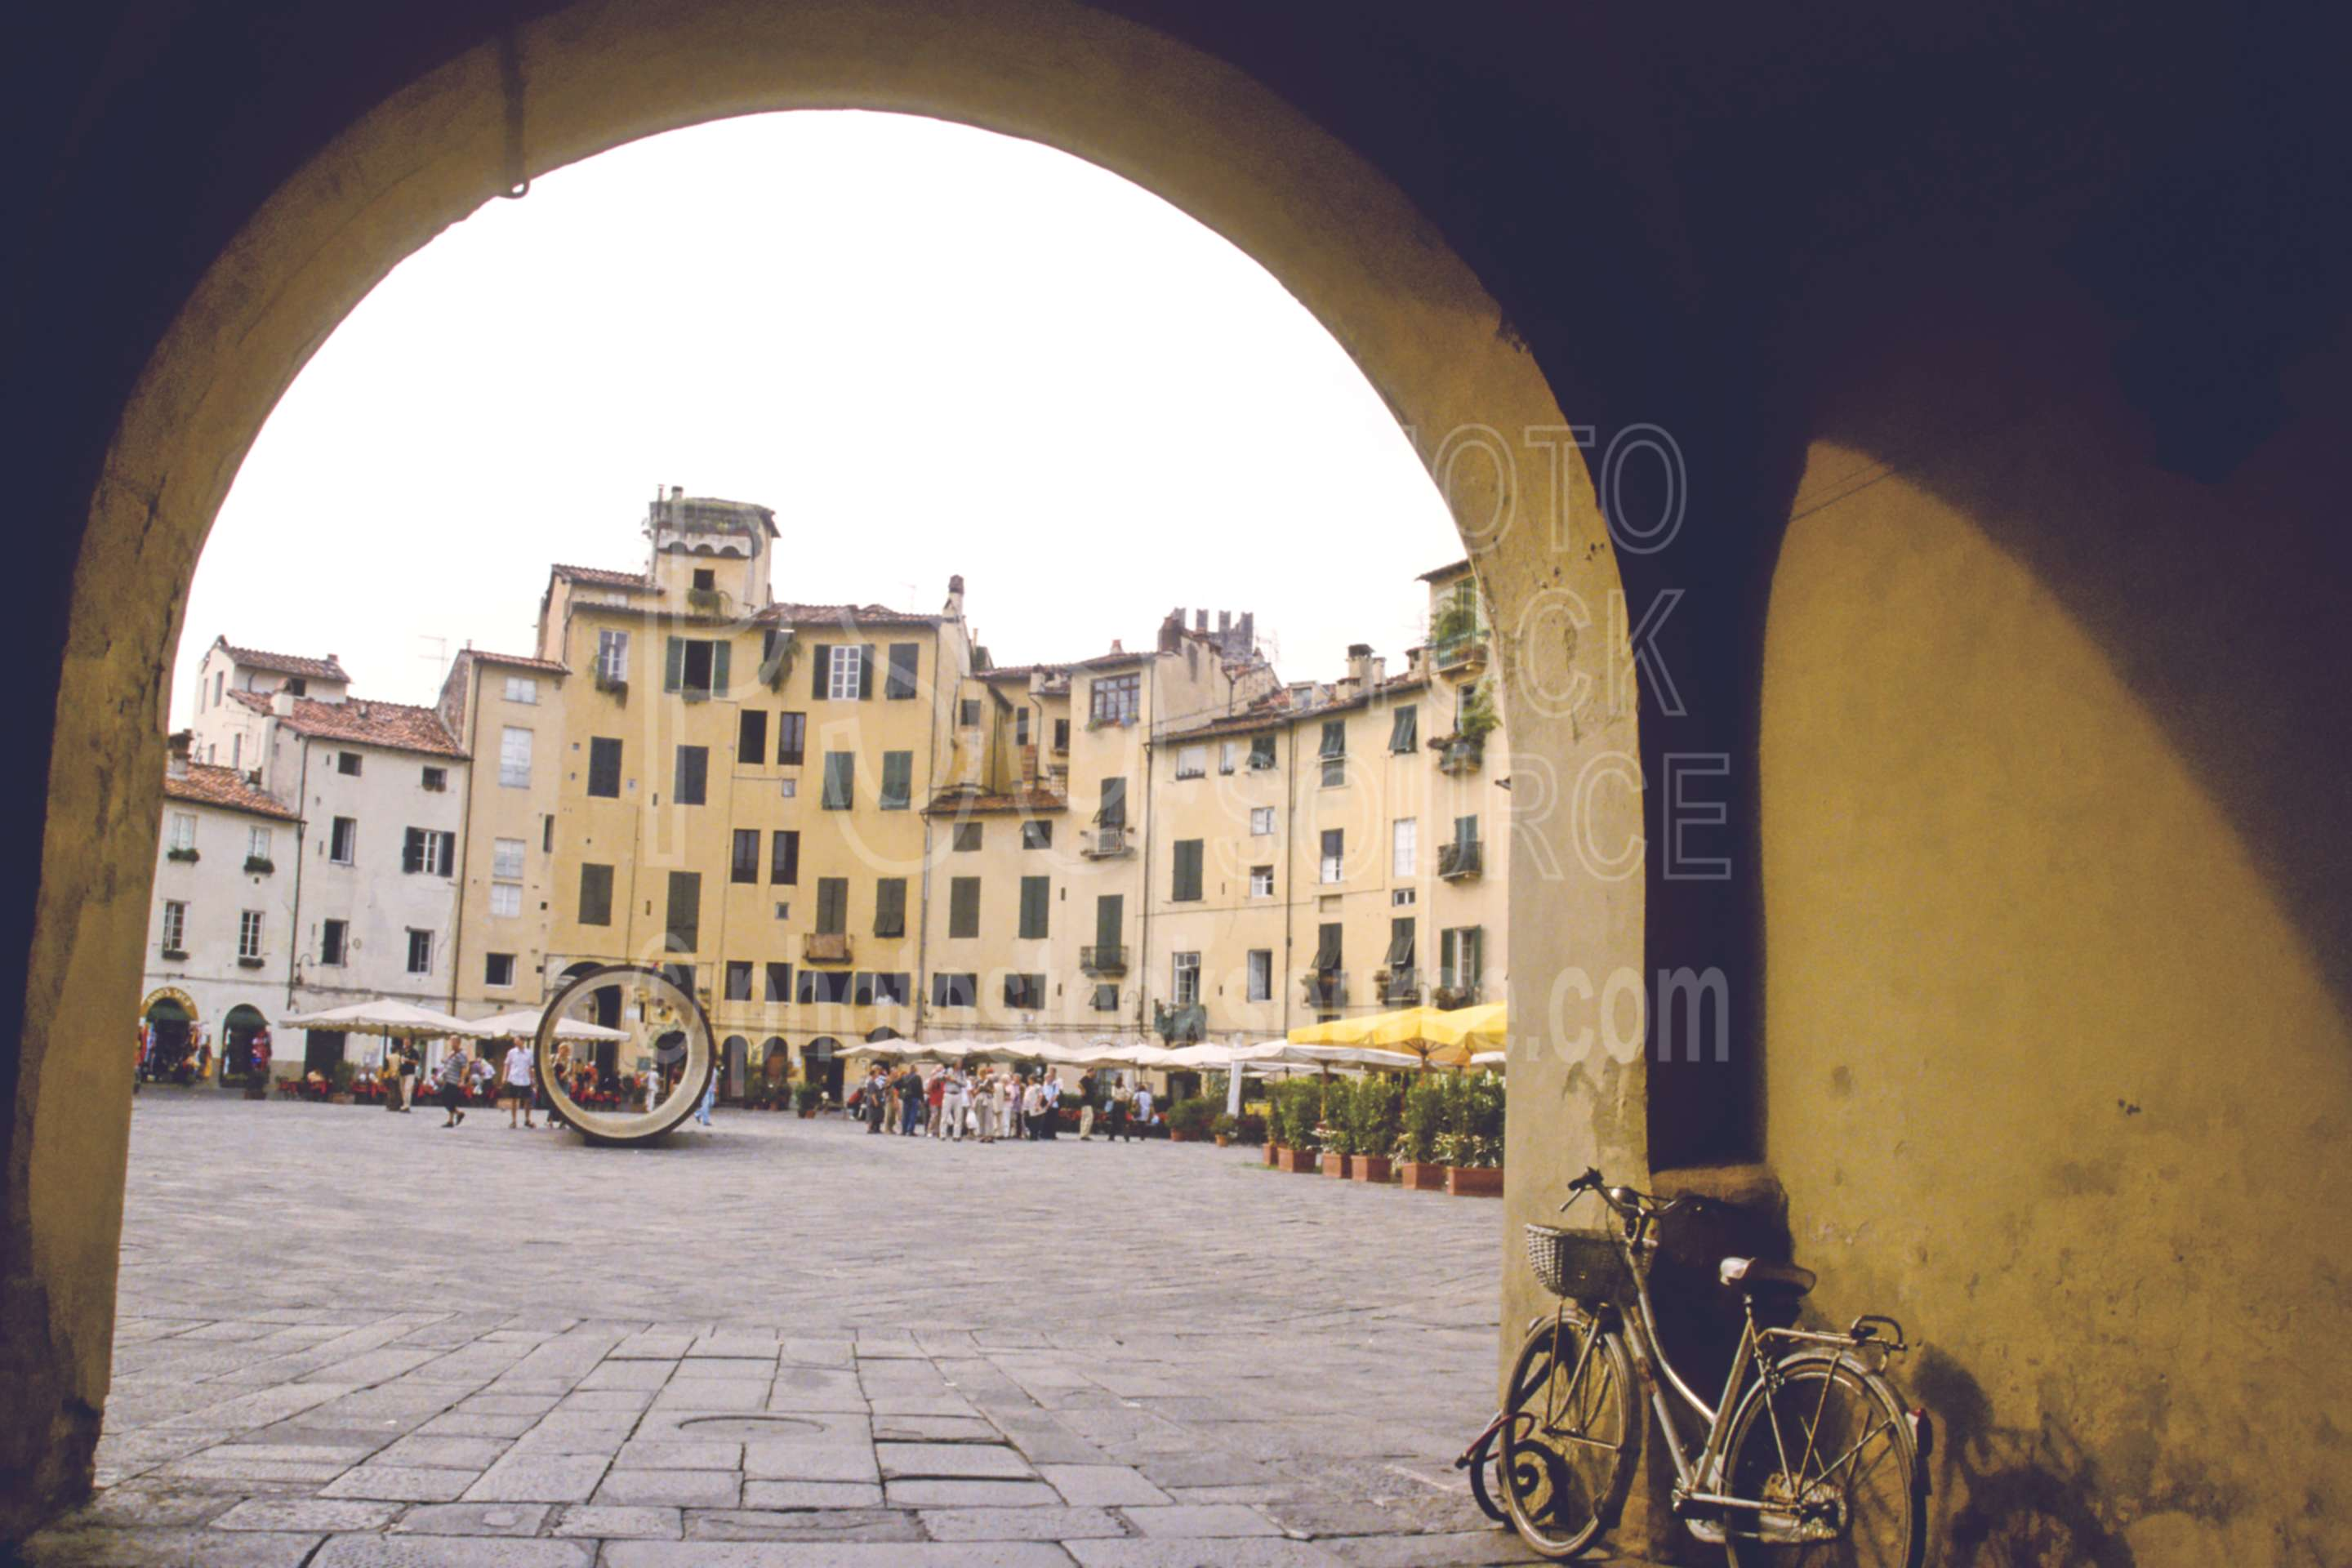 Piazza Anfiteatro,arch,bicycle,bike,europe,plaza,square